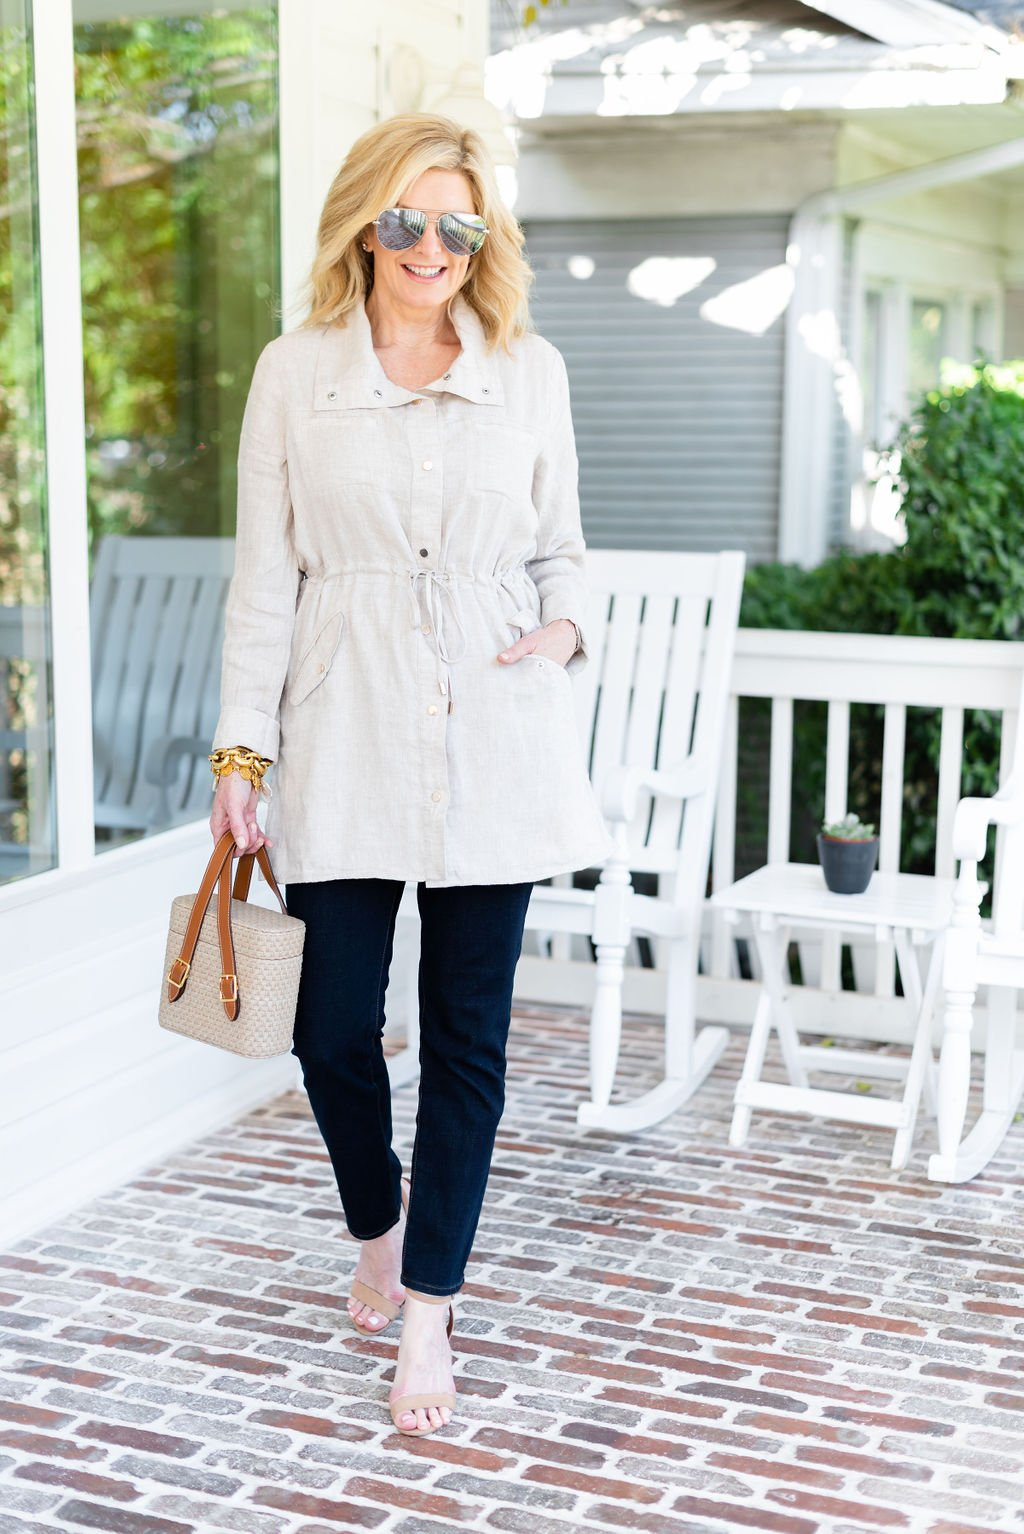 National Girlfriends Day featured by top US fashion blogger, Tanya Foster, wearing Chico's girlfriend denim: image of a woman wearing Chico's girlfriend jeans, microfiber tank, and a linen utility jacket.